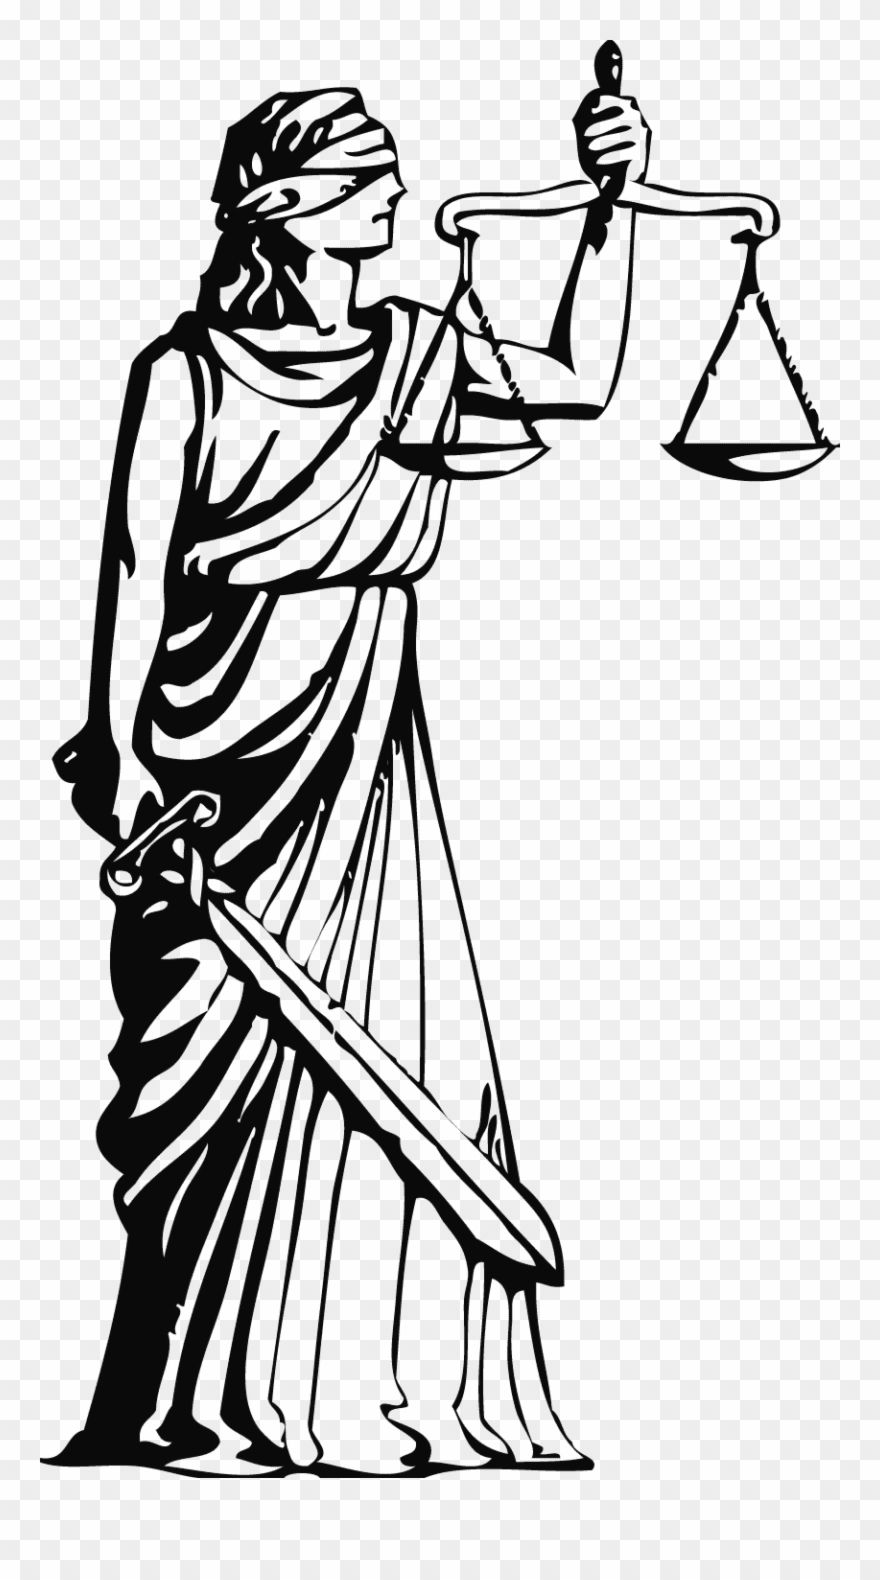 Constitution Clipart Black And White Lady Justice Image Transparent Png Download Lady Justice Clipart Black And White Clip Art